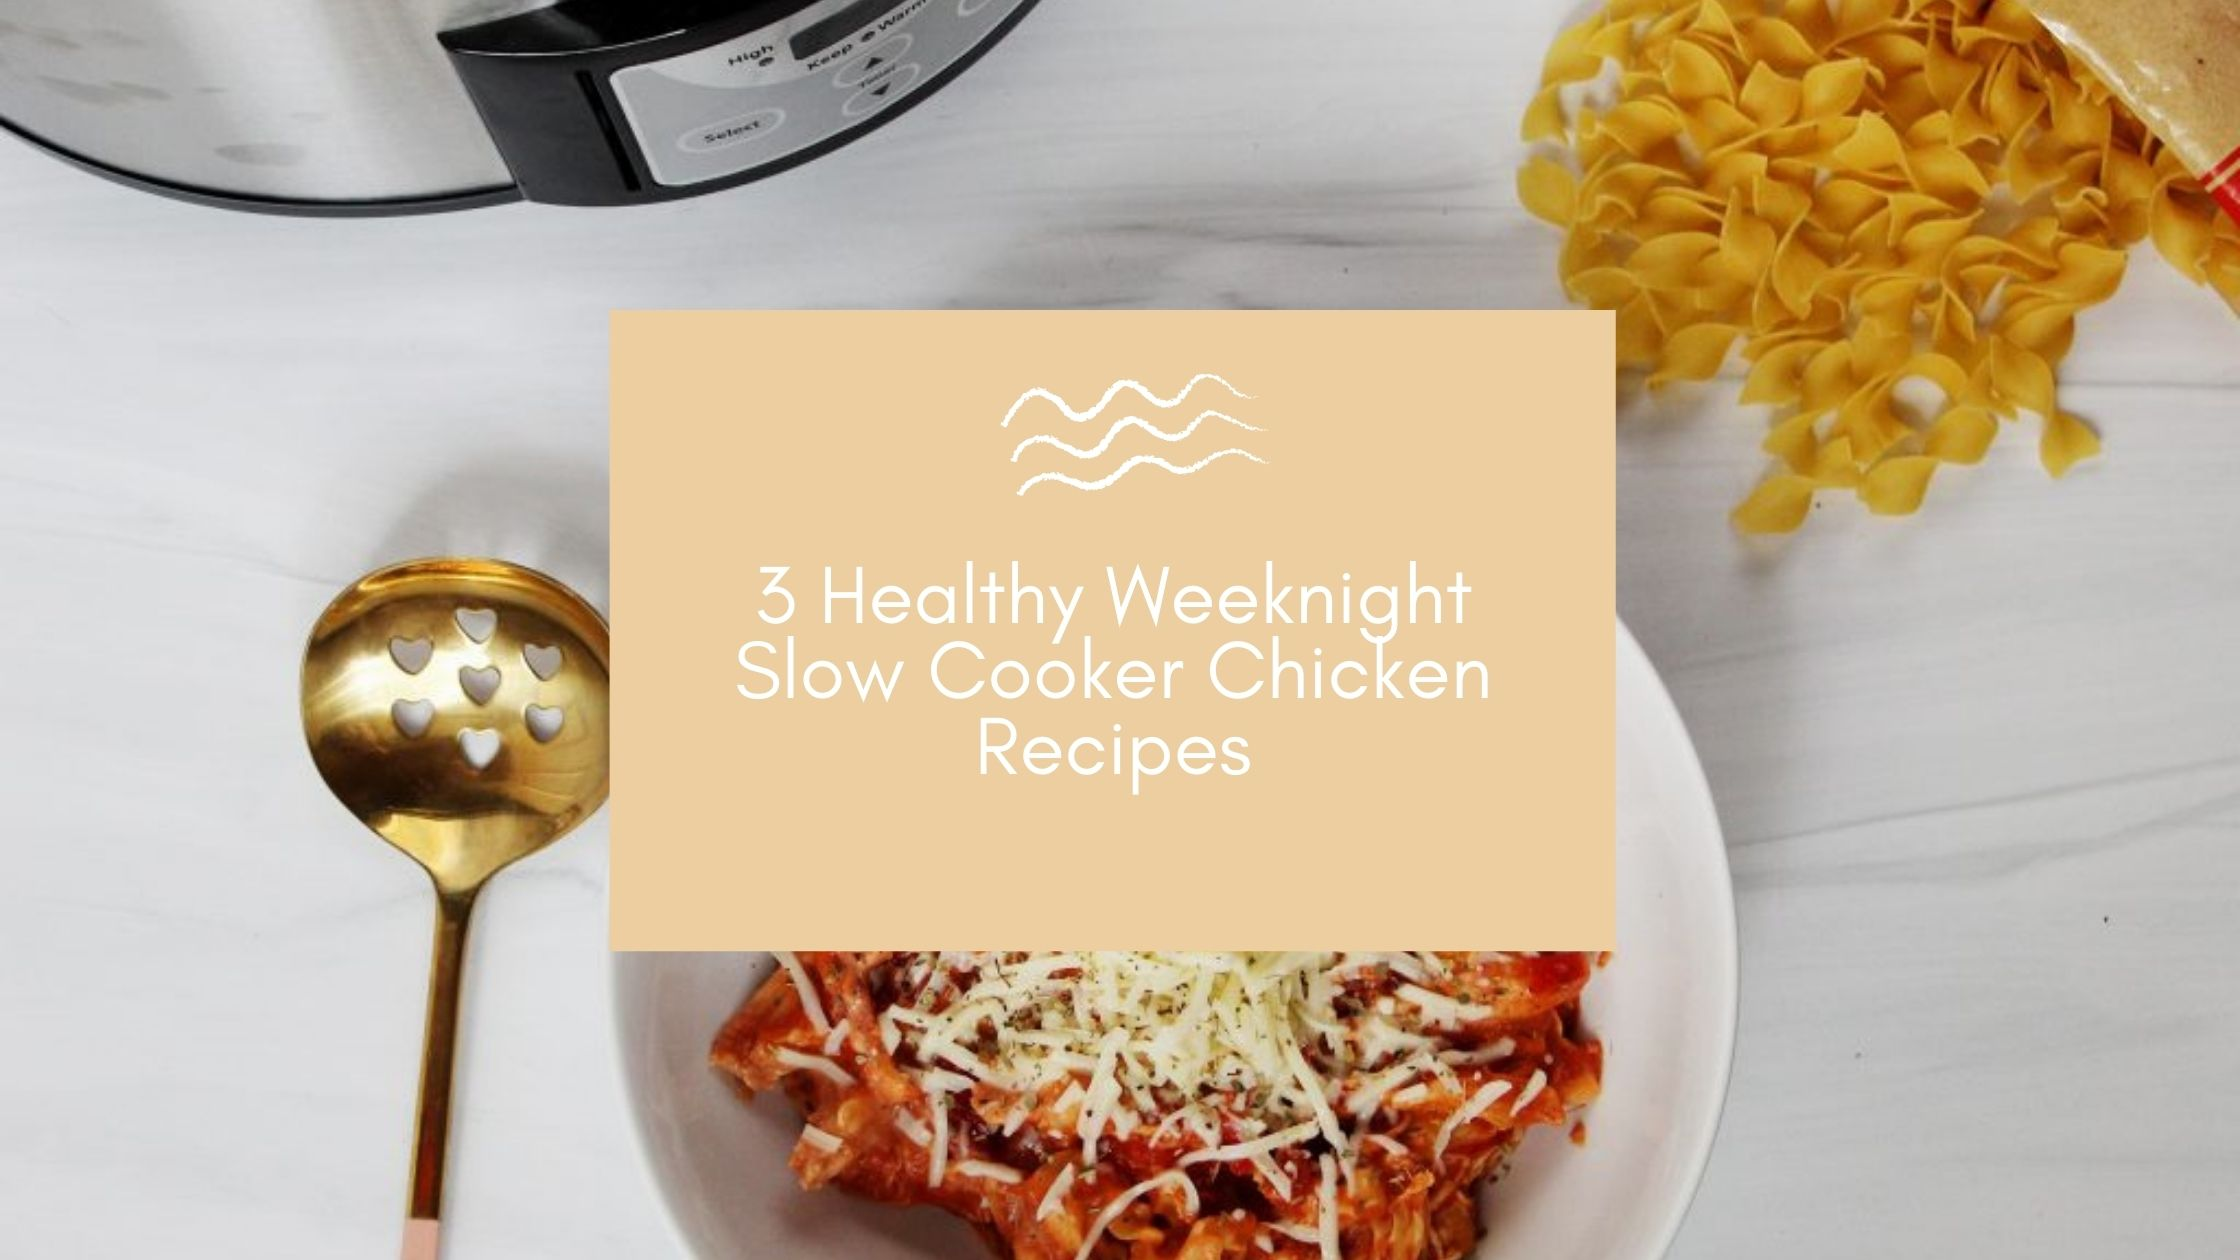 3 Healthy Weeknight Slow Cooker Chicken Recipes